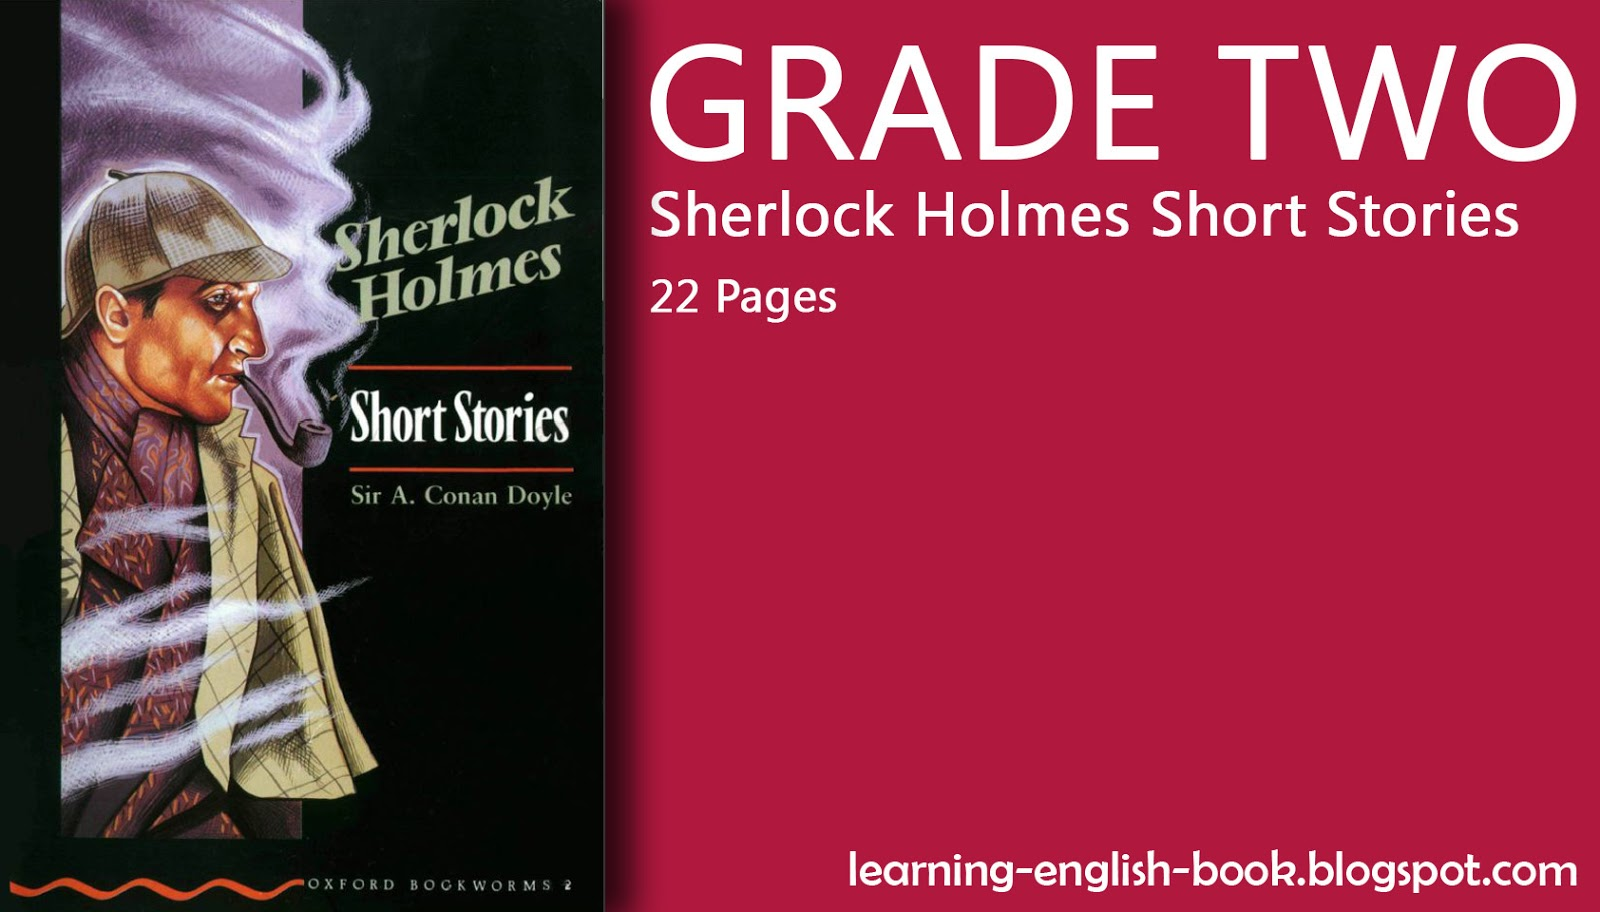 short stories of sherlock holmes essay Sherlock holmes appeared in arthur conan doyle's book the adventures of sherlock holmes which was a collection of twelve stories or cases which were solved by the detective with helpful assistance from his friend dr watson (doyle, 2-180).